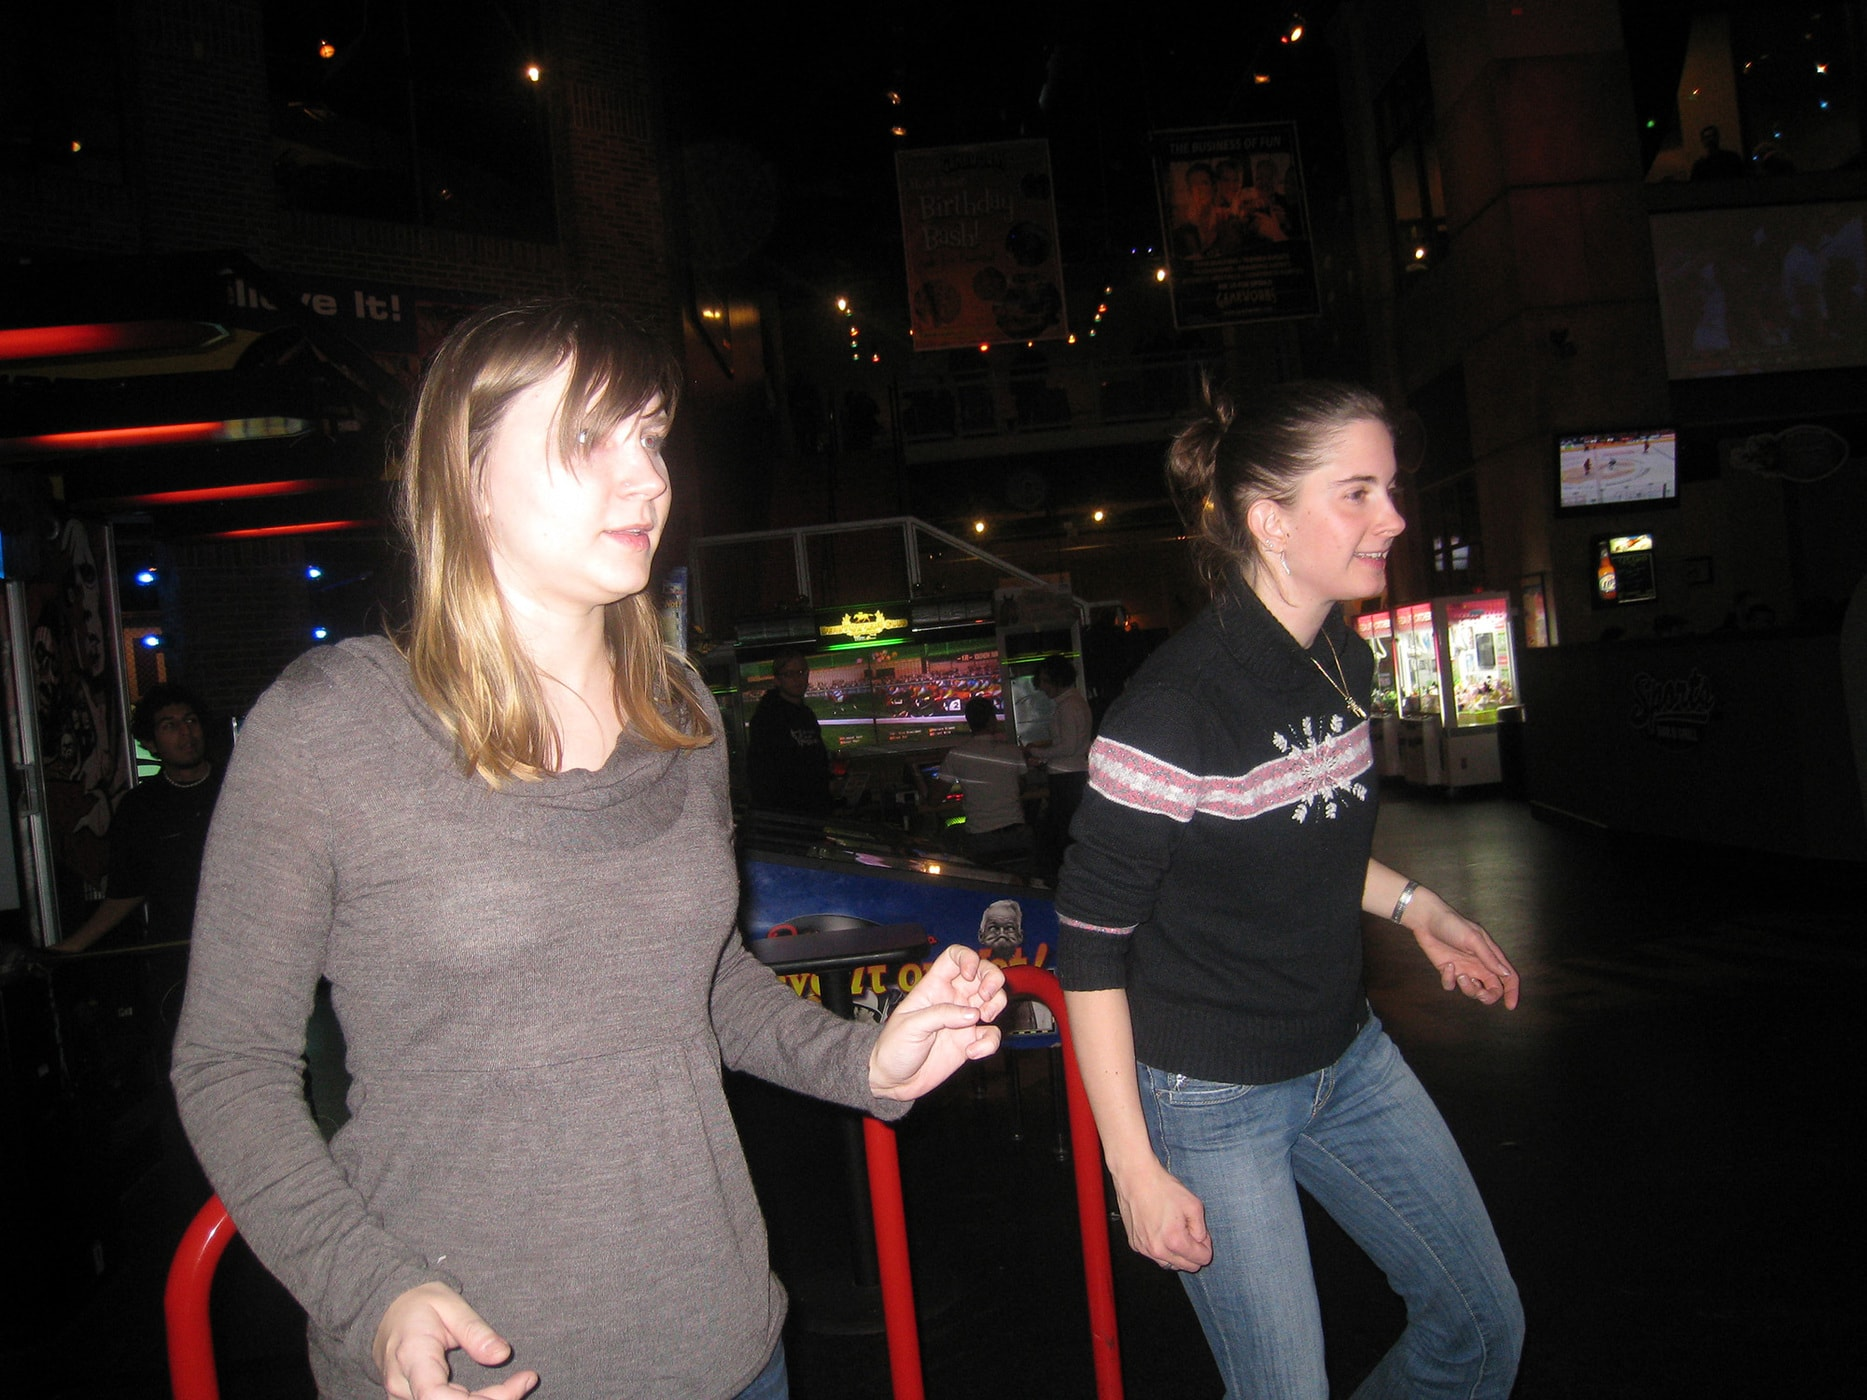 Playing games at Gameworks